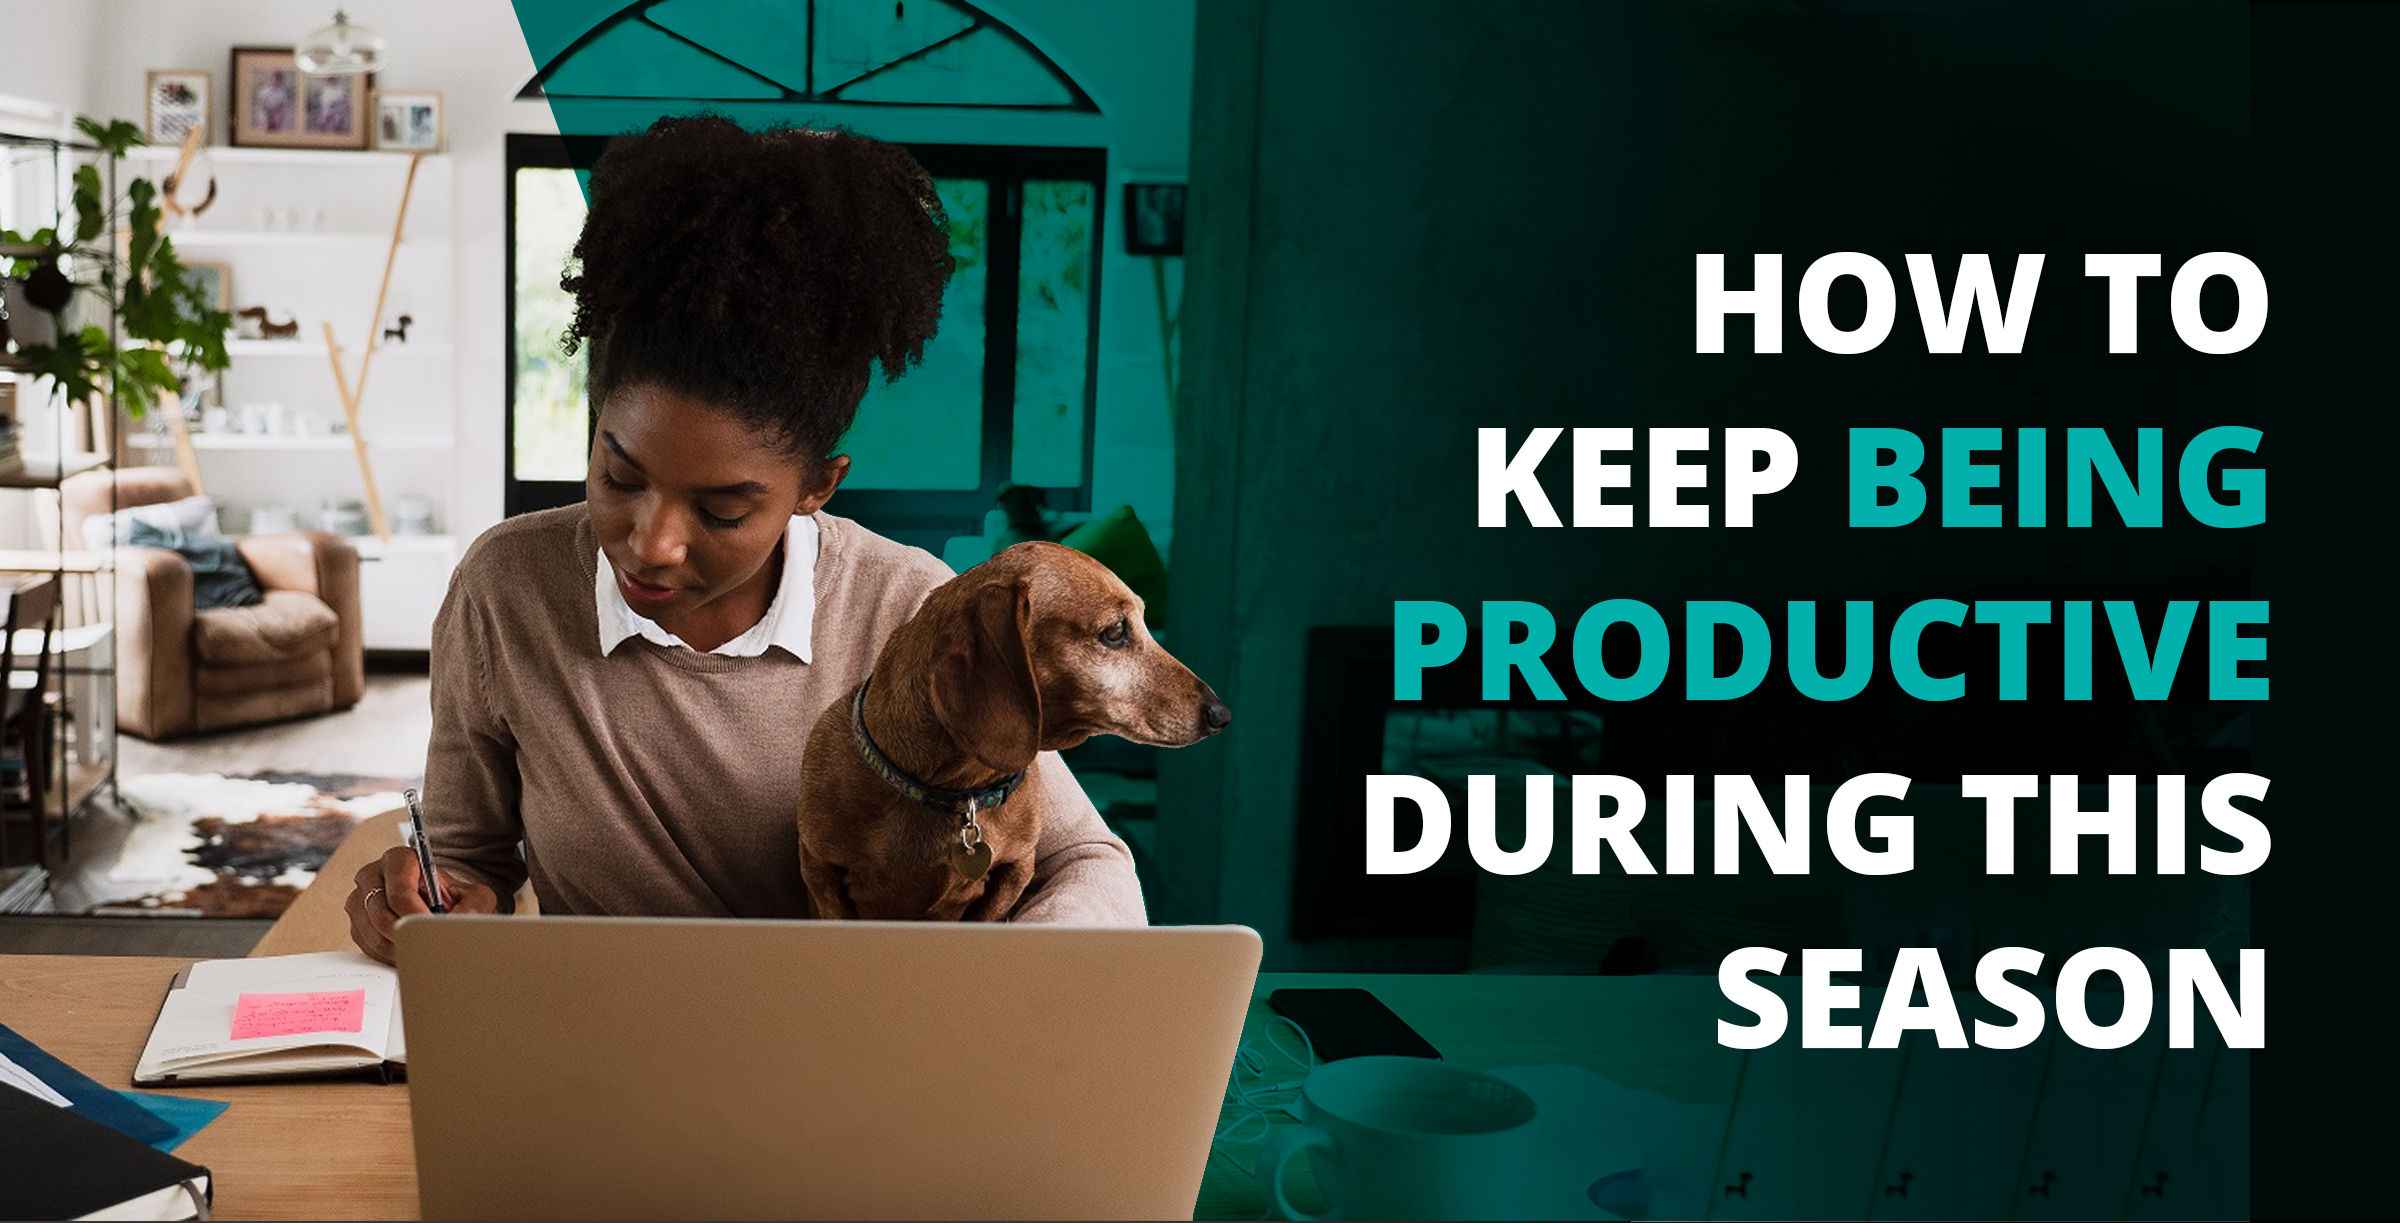 How to Keep Being Productive During This Season